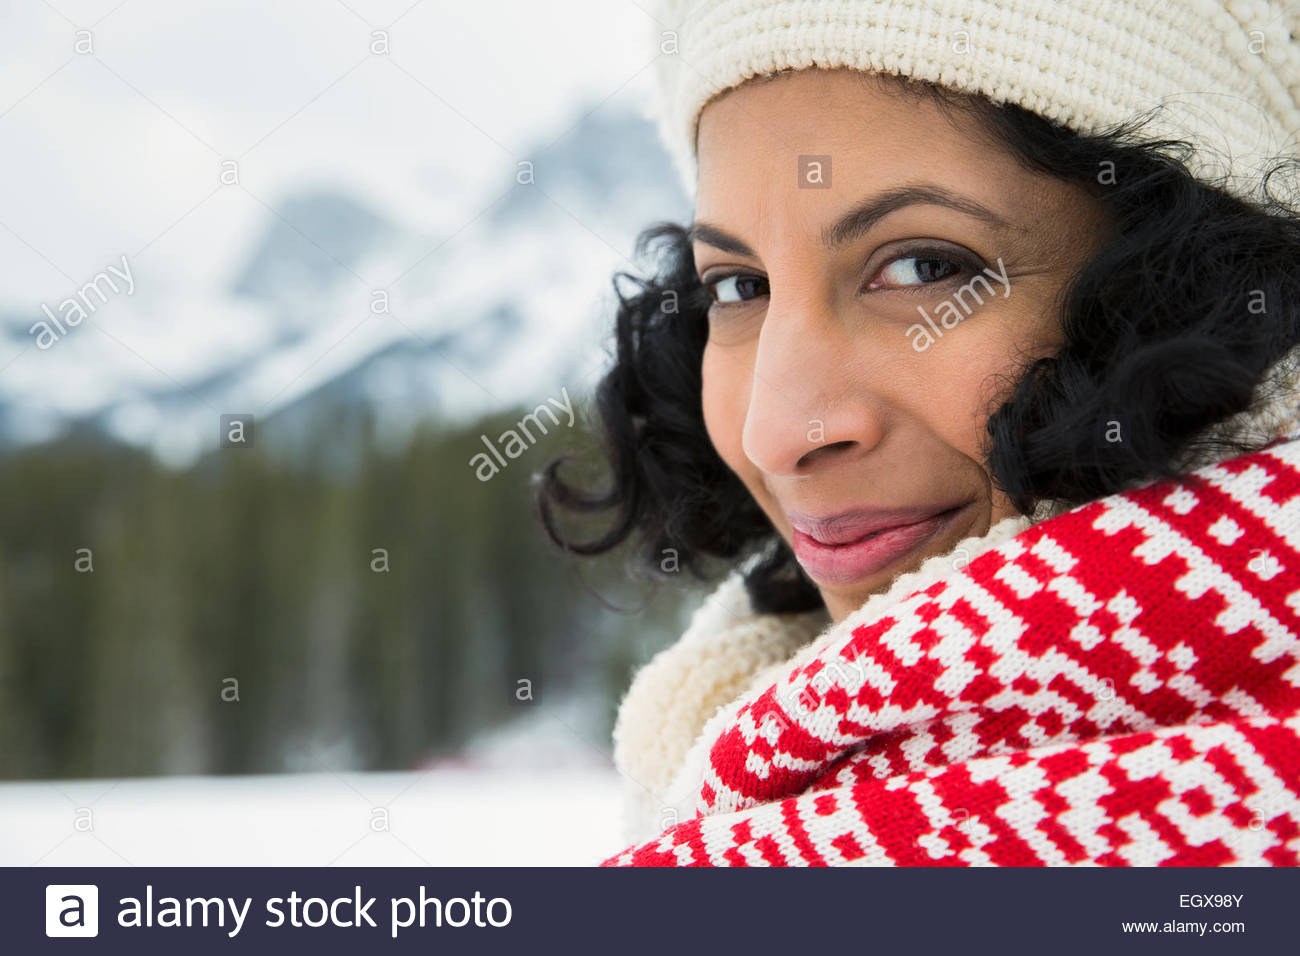 Close up portrait of smiling woman wearing scarf - Stock Image